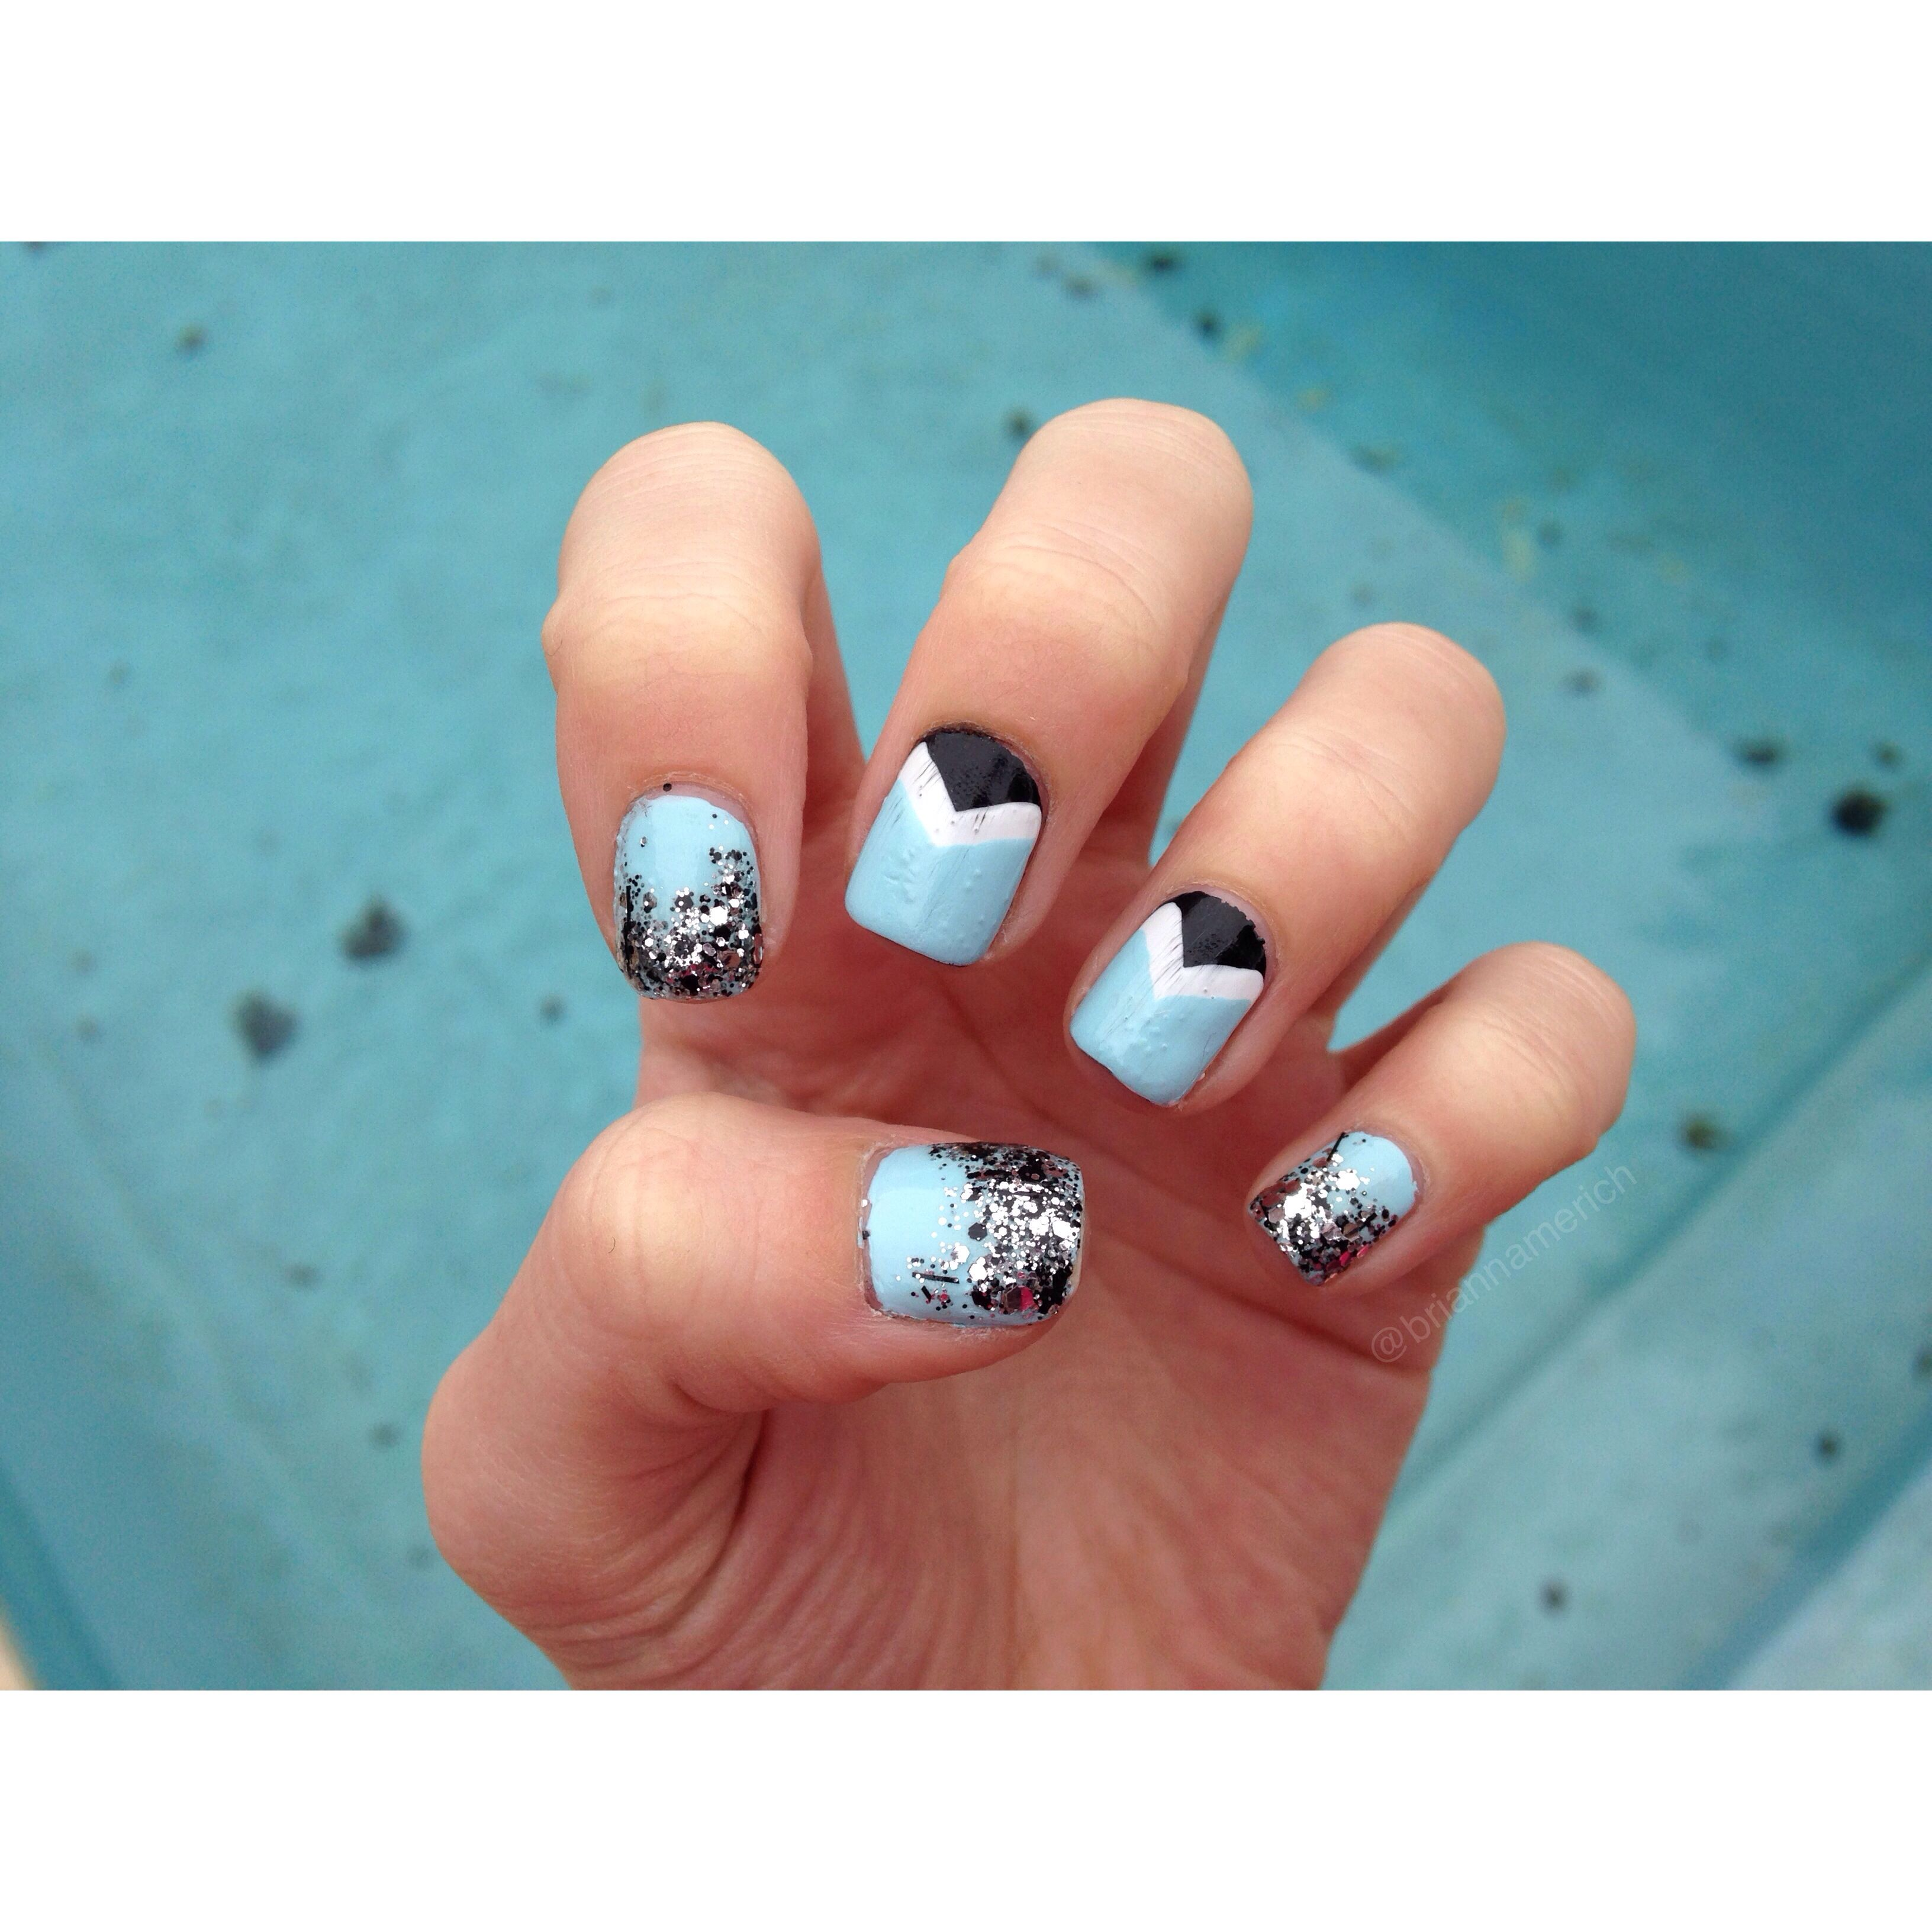 mint candy apple essie polish triangle ombré glitter nails(: | Nail ...